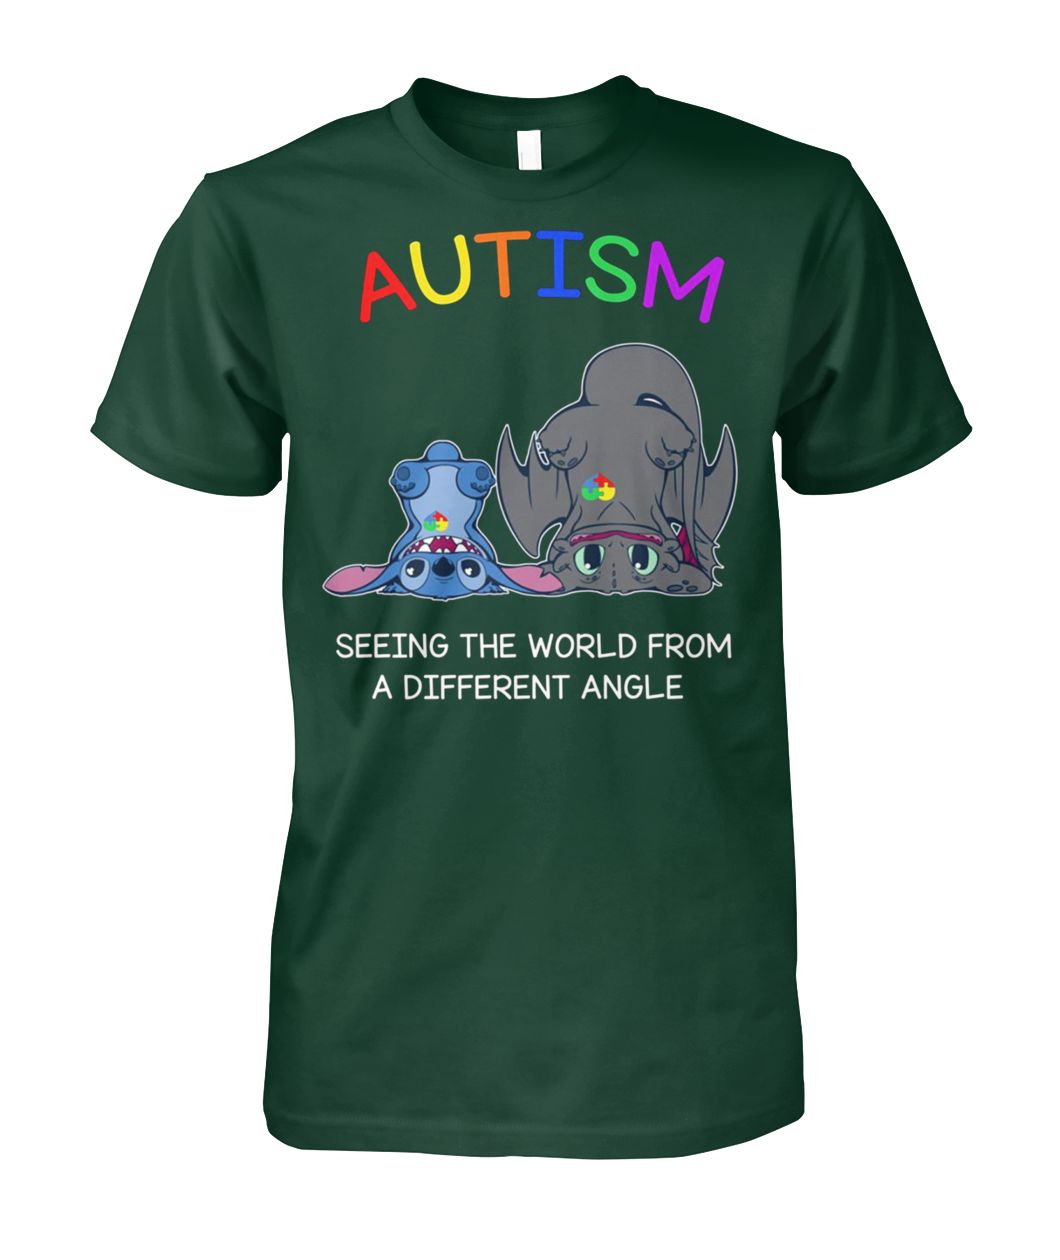 [Limited edition] Stitch and toothless autism seeing the world from a different angle shirt